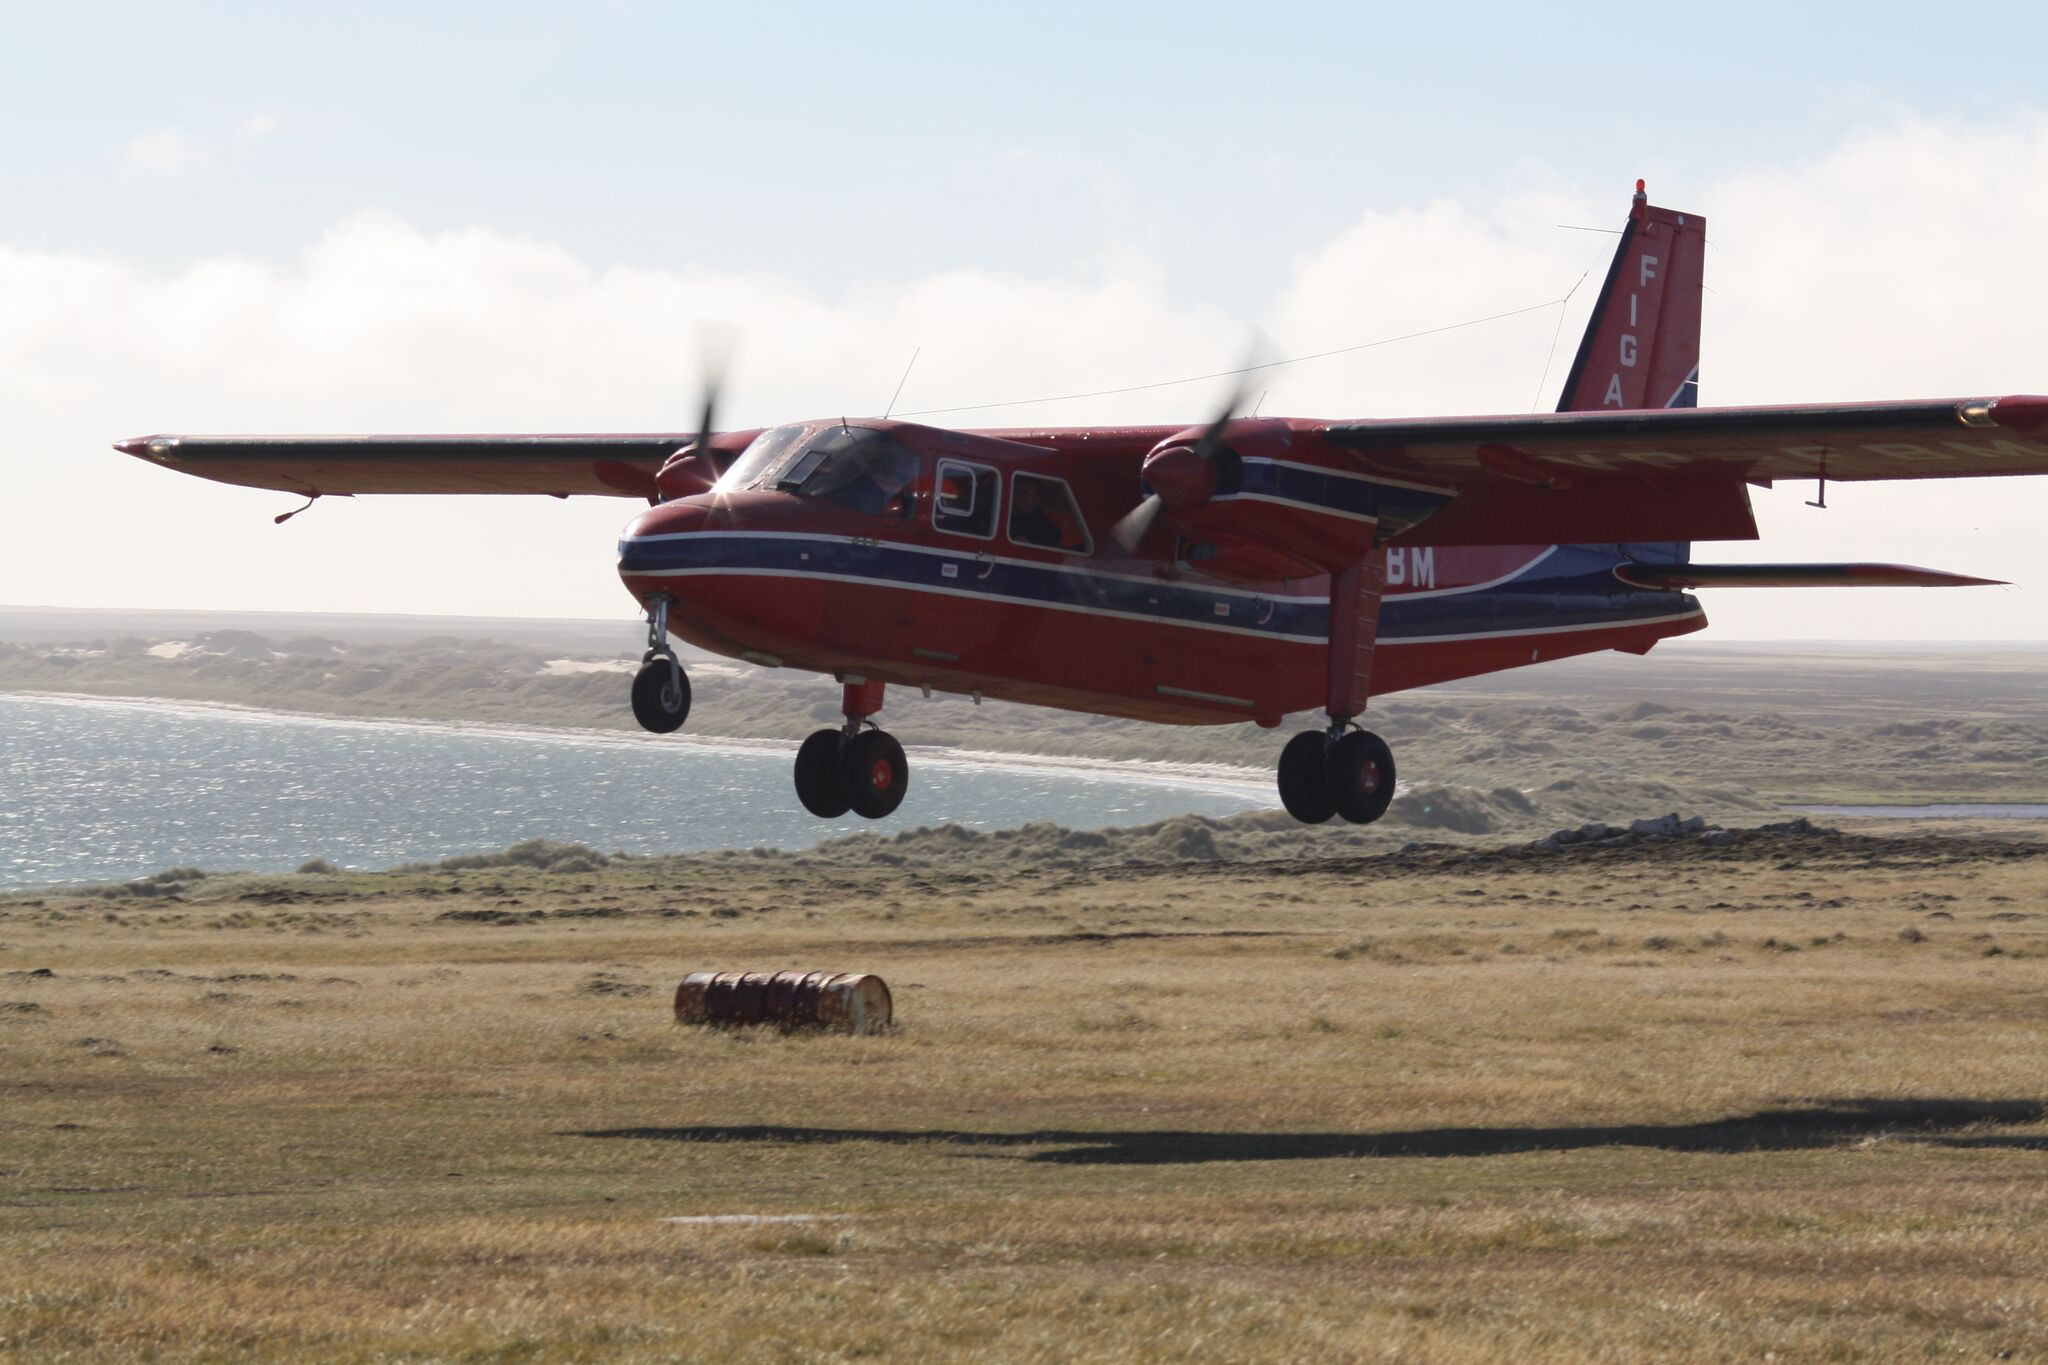 The Flight from Pebble Island